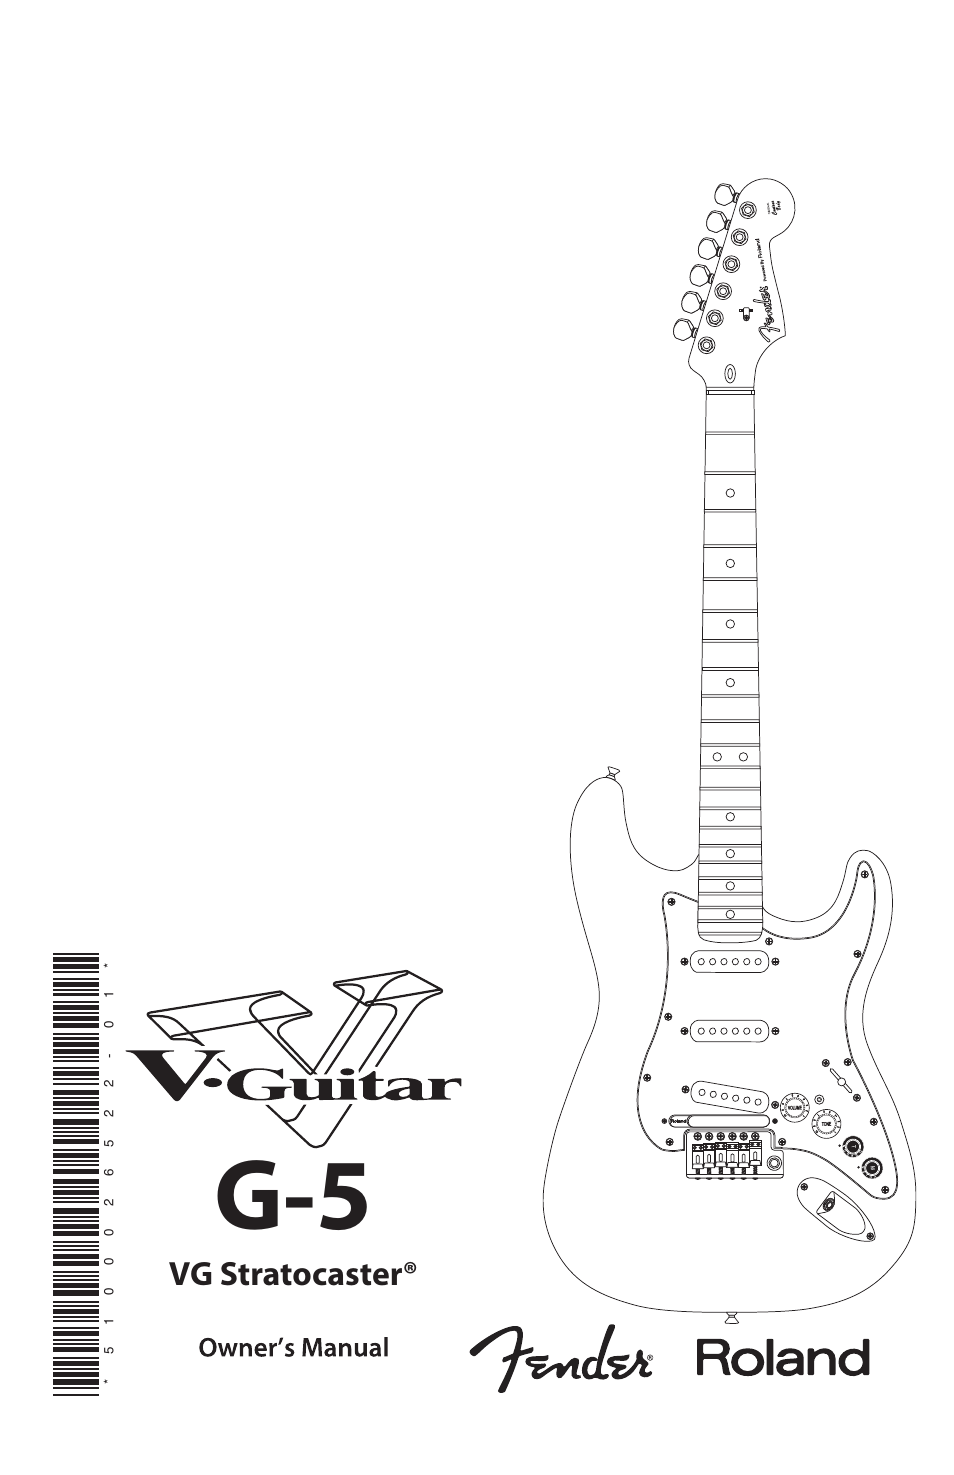 hight resolution of fender roland g 5 vg stratocaster user manual 18 pages rh manualsdir com 5 way strat switch wiring diagram fender 5 way switch wiring